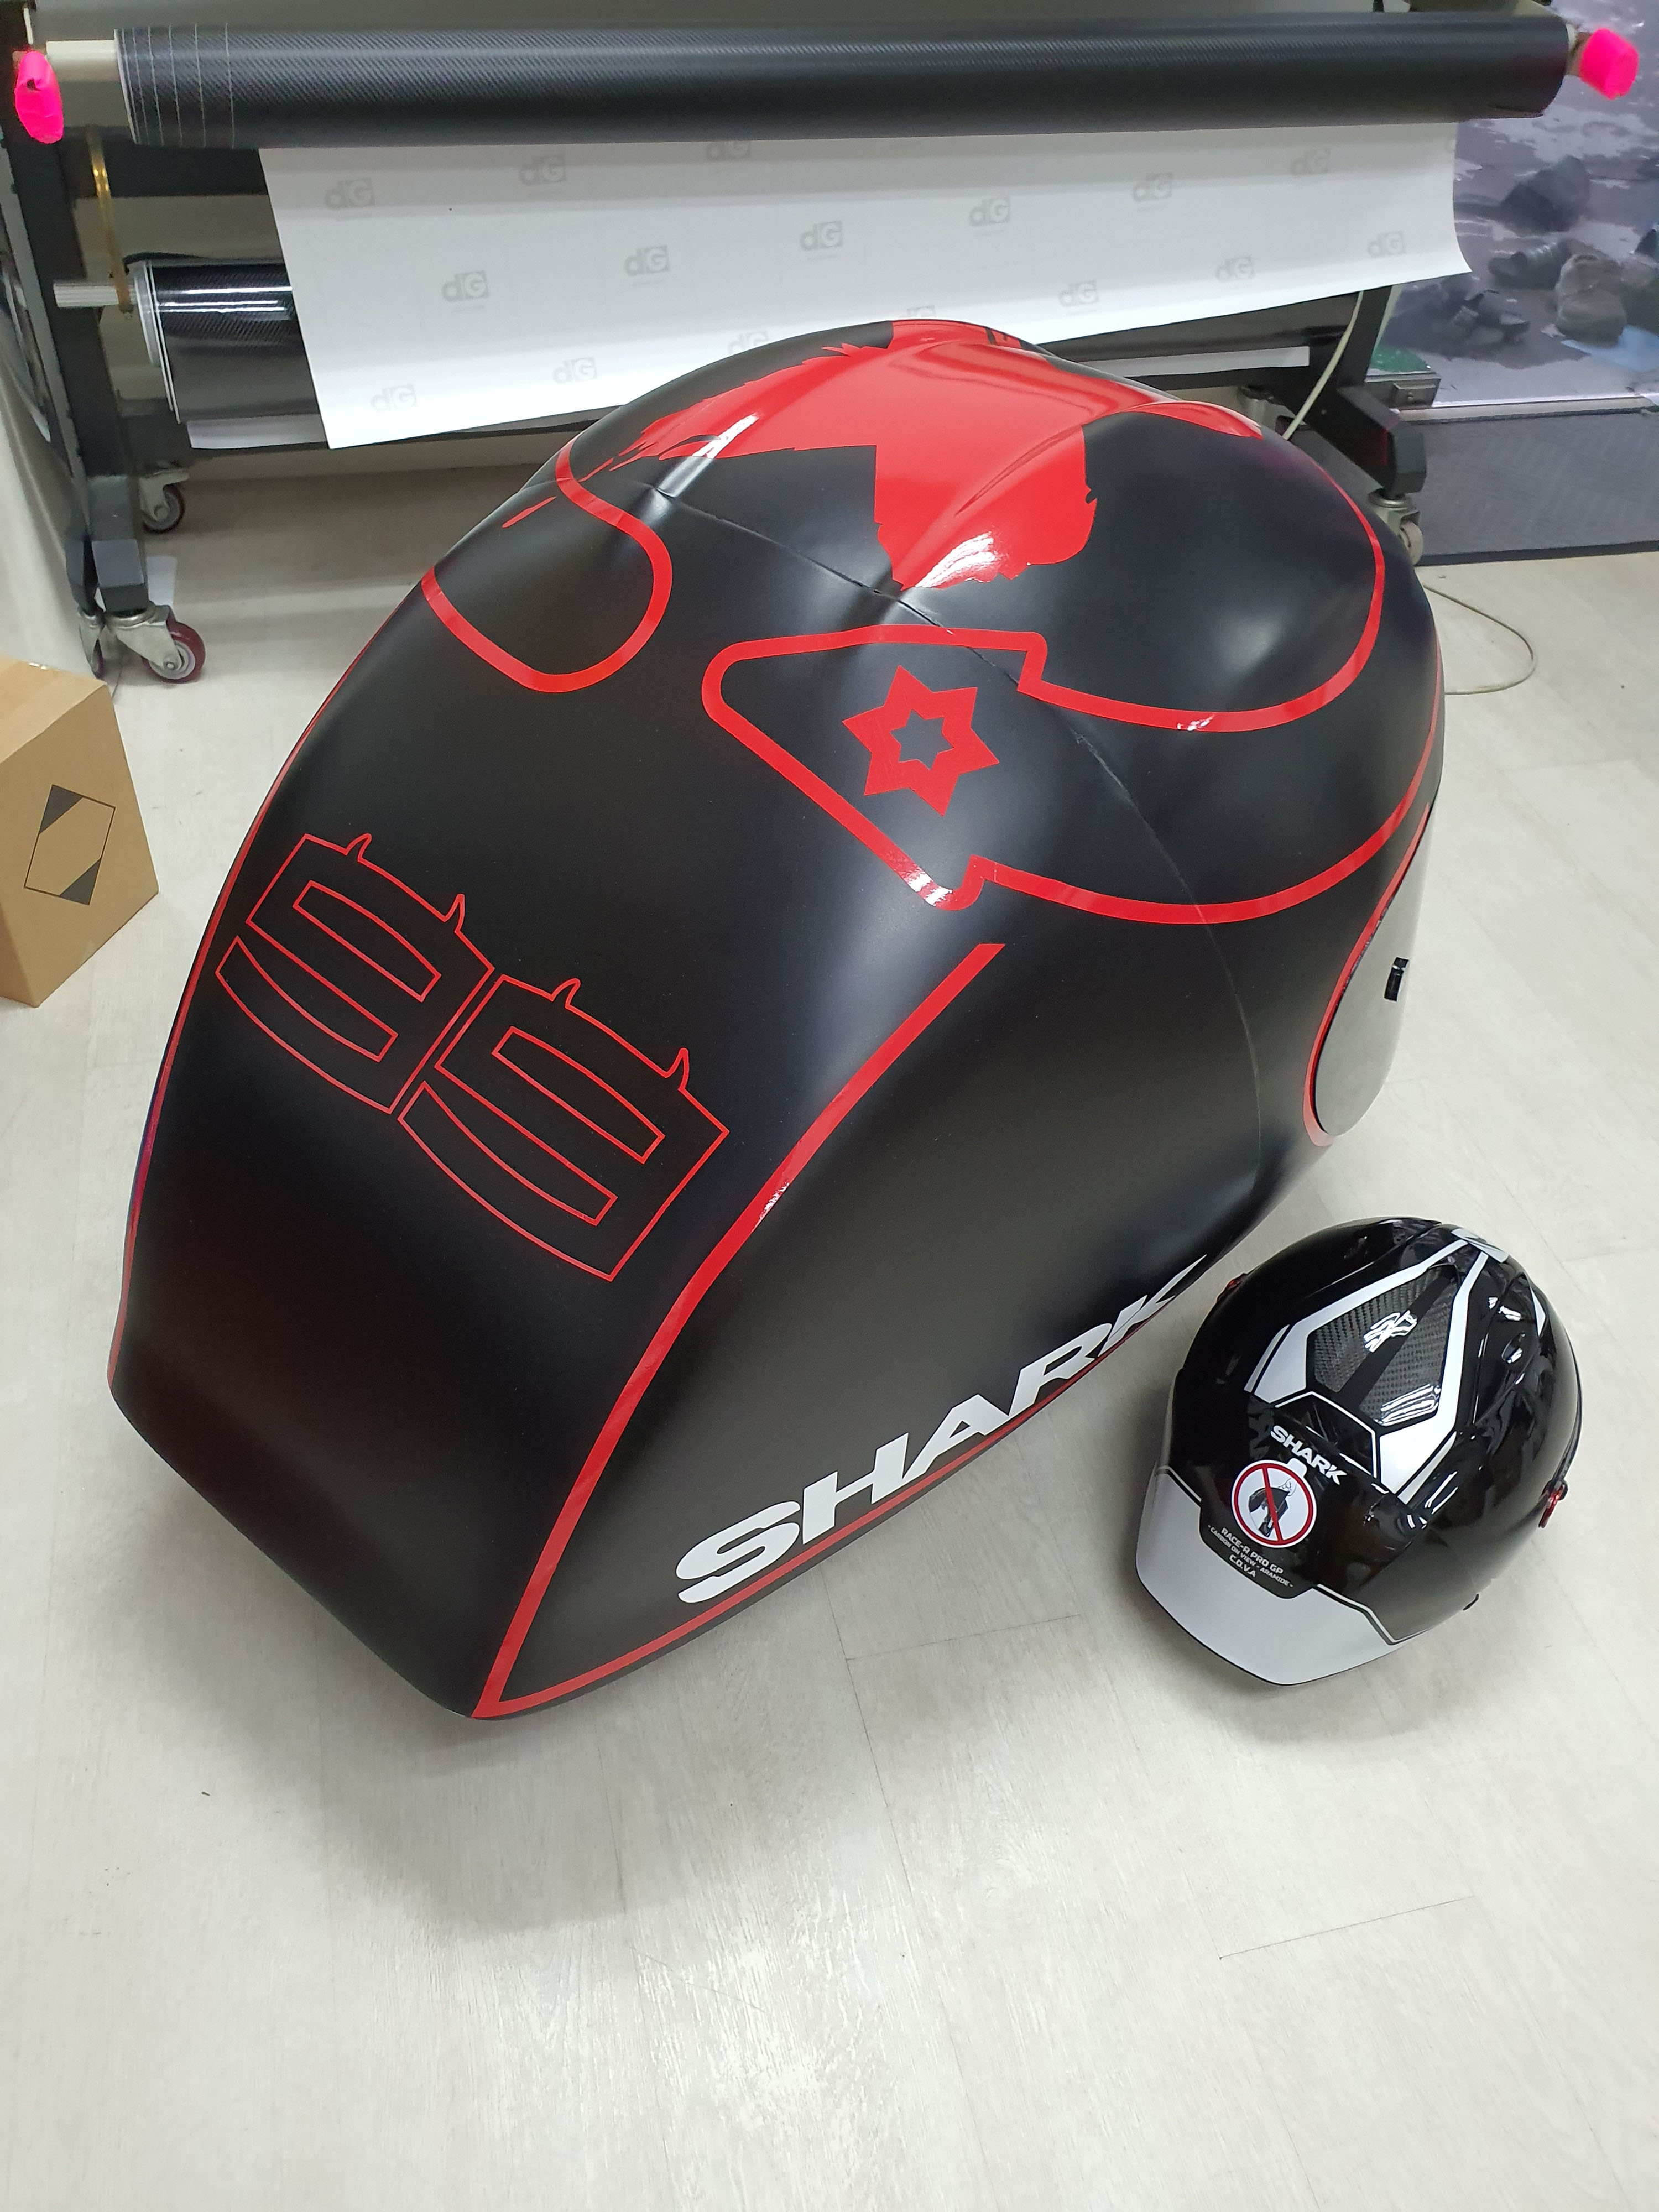 Top view of the Gigantic Shark Helmet Decal. Beside it is a normal helmet to see the vast difference in size!